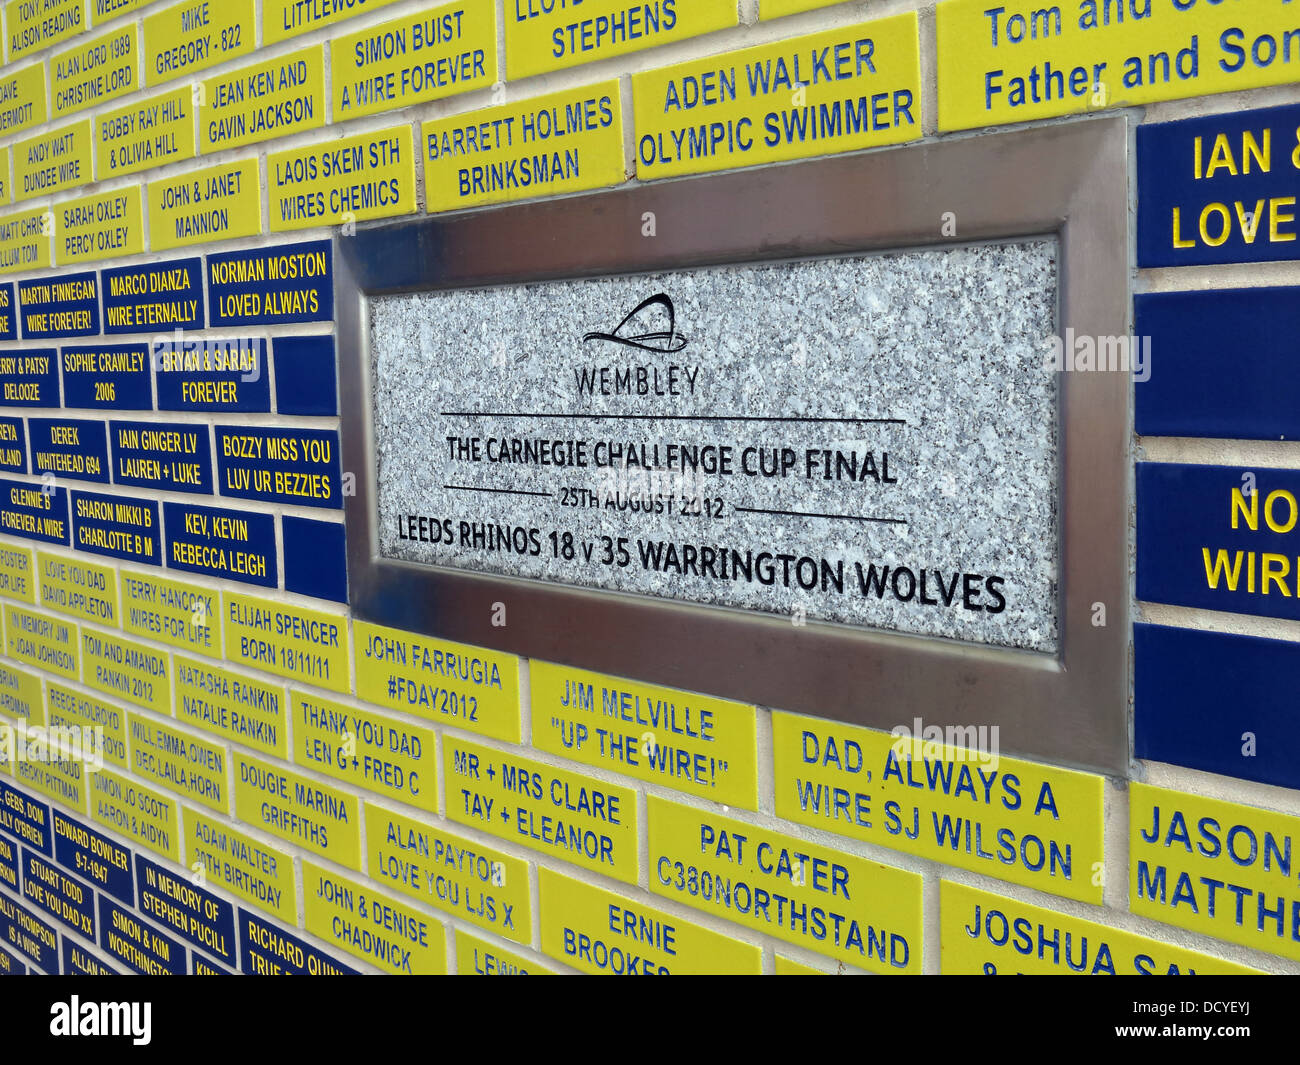 Halliwell,Jones,stadium,Mike,Gregory,Way,/,Winwick,Rd,Warrington,WA2,7NE,memorial,plaque,with,wire,wires,supporters,bricks,yellow,primrose,blue,sport,sporting,cheshire,NW,England,north,west,UK,Gotonysmith,Warringtonians,Buy Pictures of,Buy Images Of